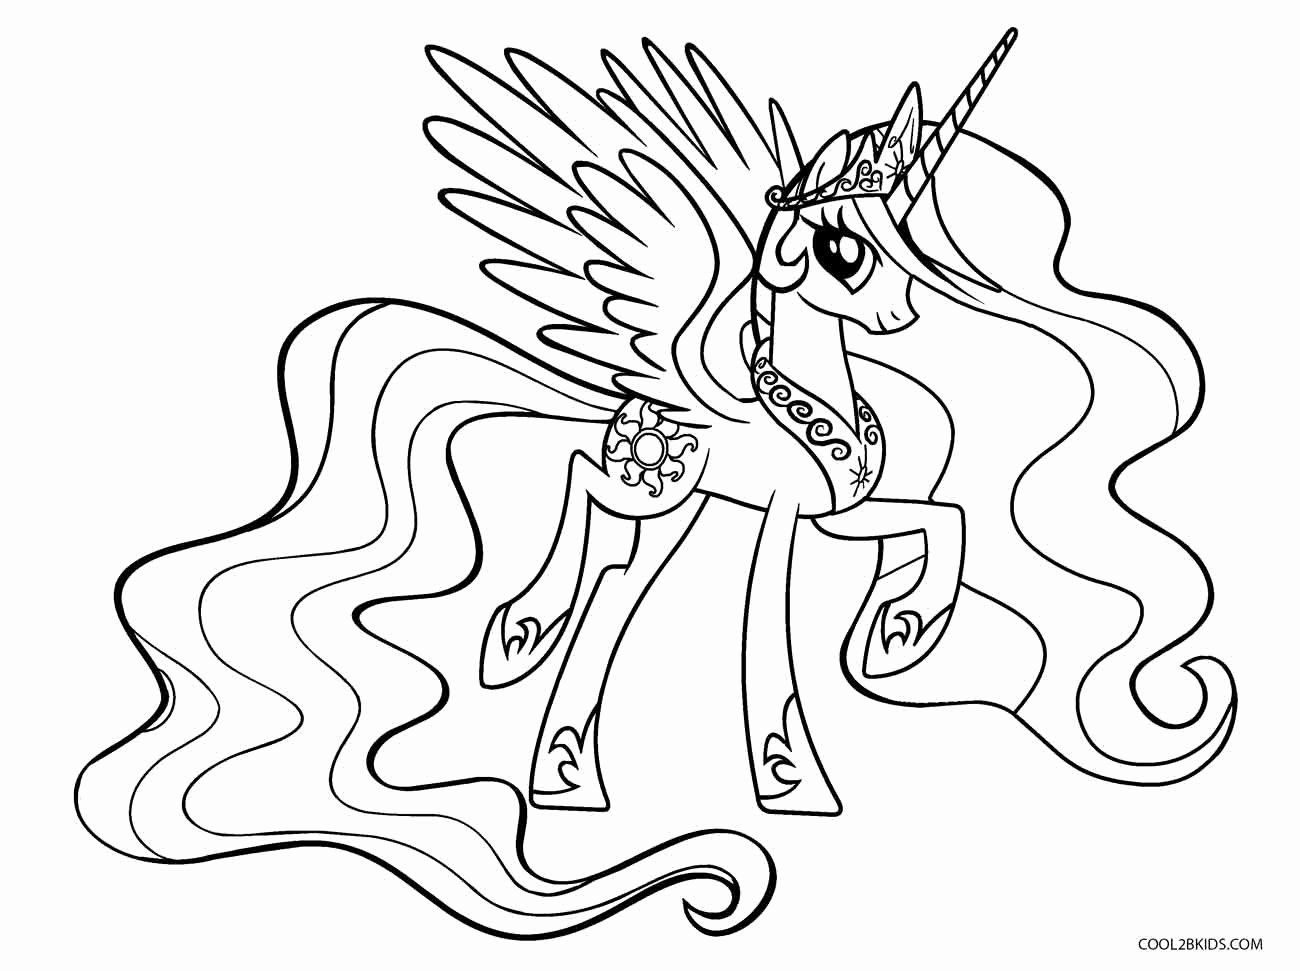 My Little Pony Coloring Book Best Of Free Printable My Little Pony Coloring Pages For Kids My Little Pony Coloring Pony Drawing My Little Pony Printable